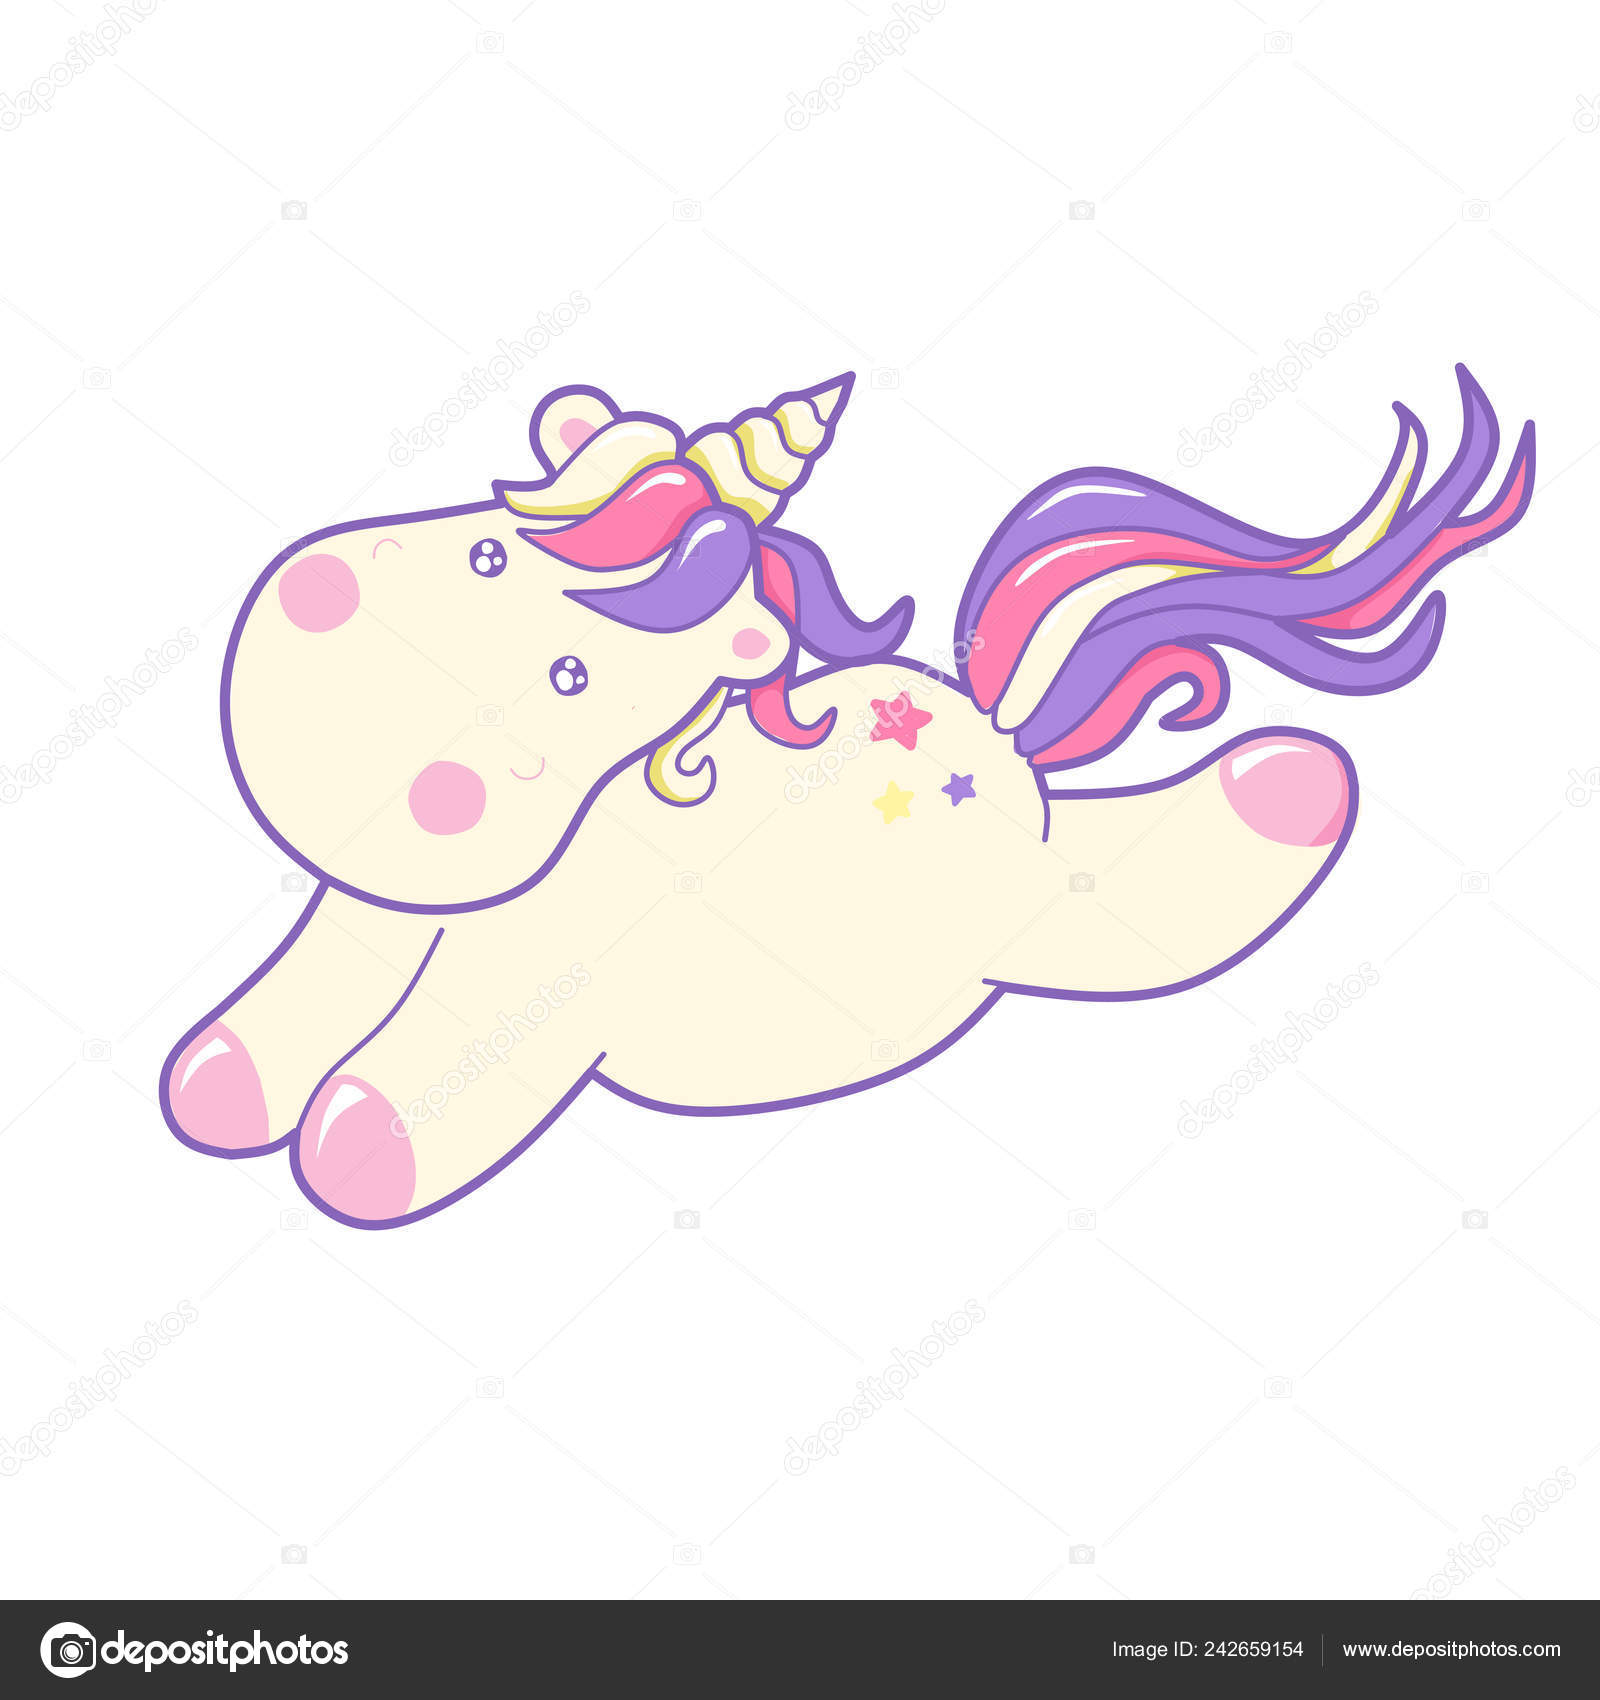 Licorne Mignon Illustration Vectorielle Kawaii Conte Fées